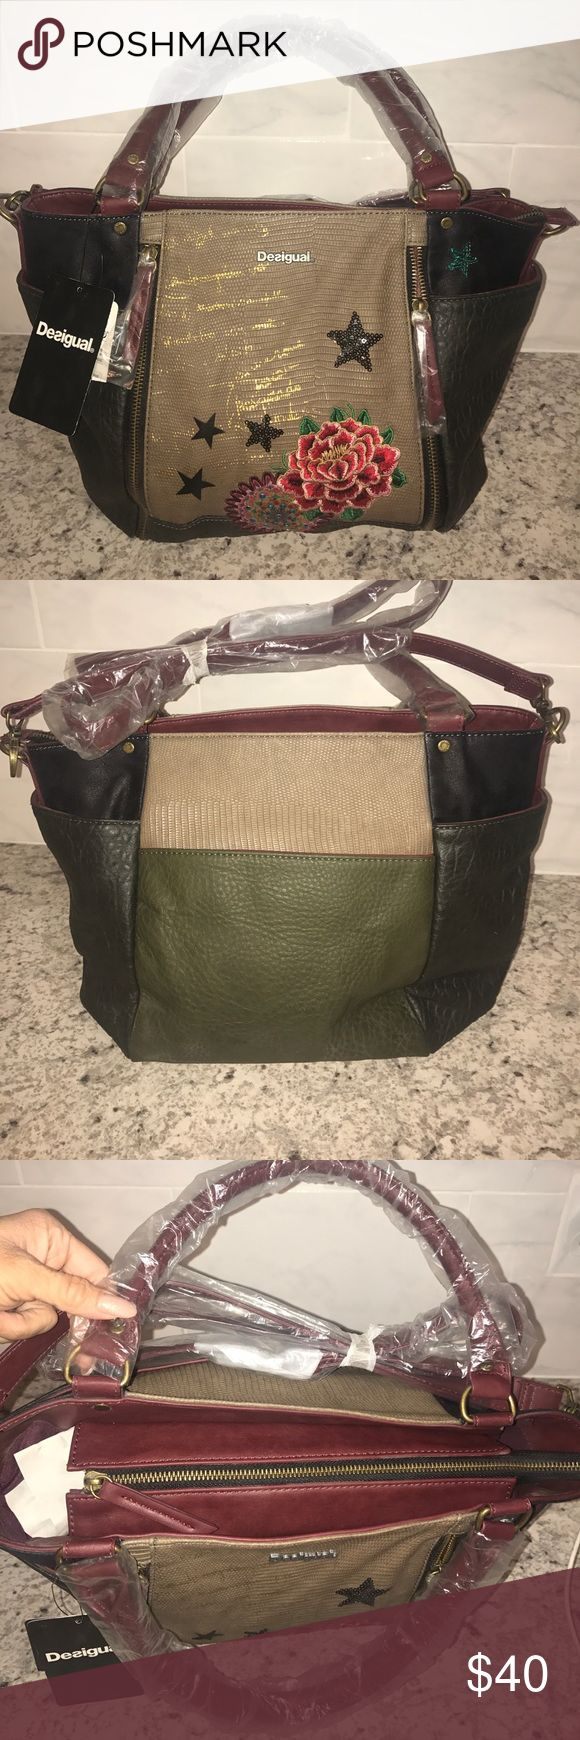 Desigual Bols Sevilla Camila handbag NWT! This zipper front detailed purse is adorable! The front has gold popping through the taupe, with burgundy interior and handles. Desigual Bags Shoulder Bags